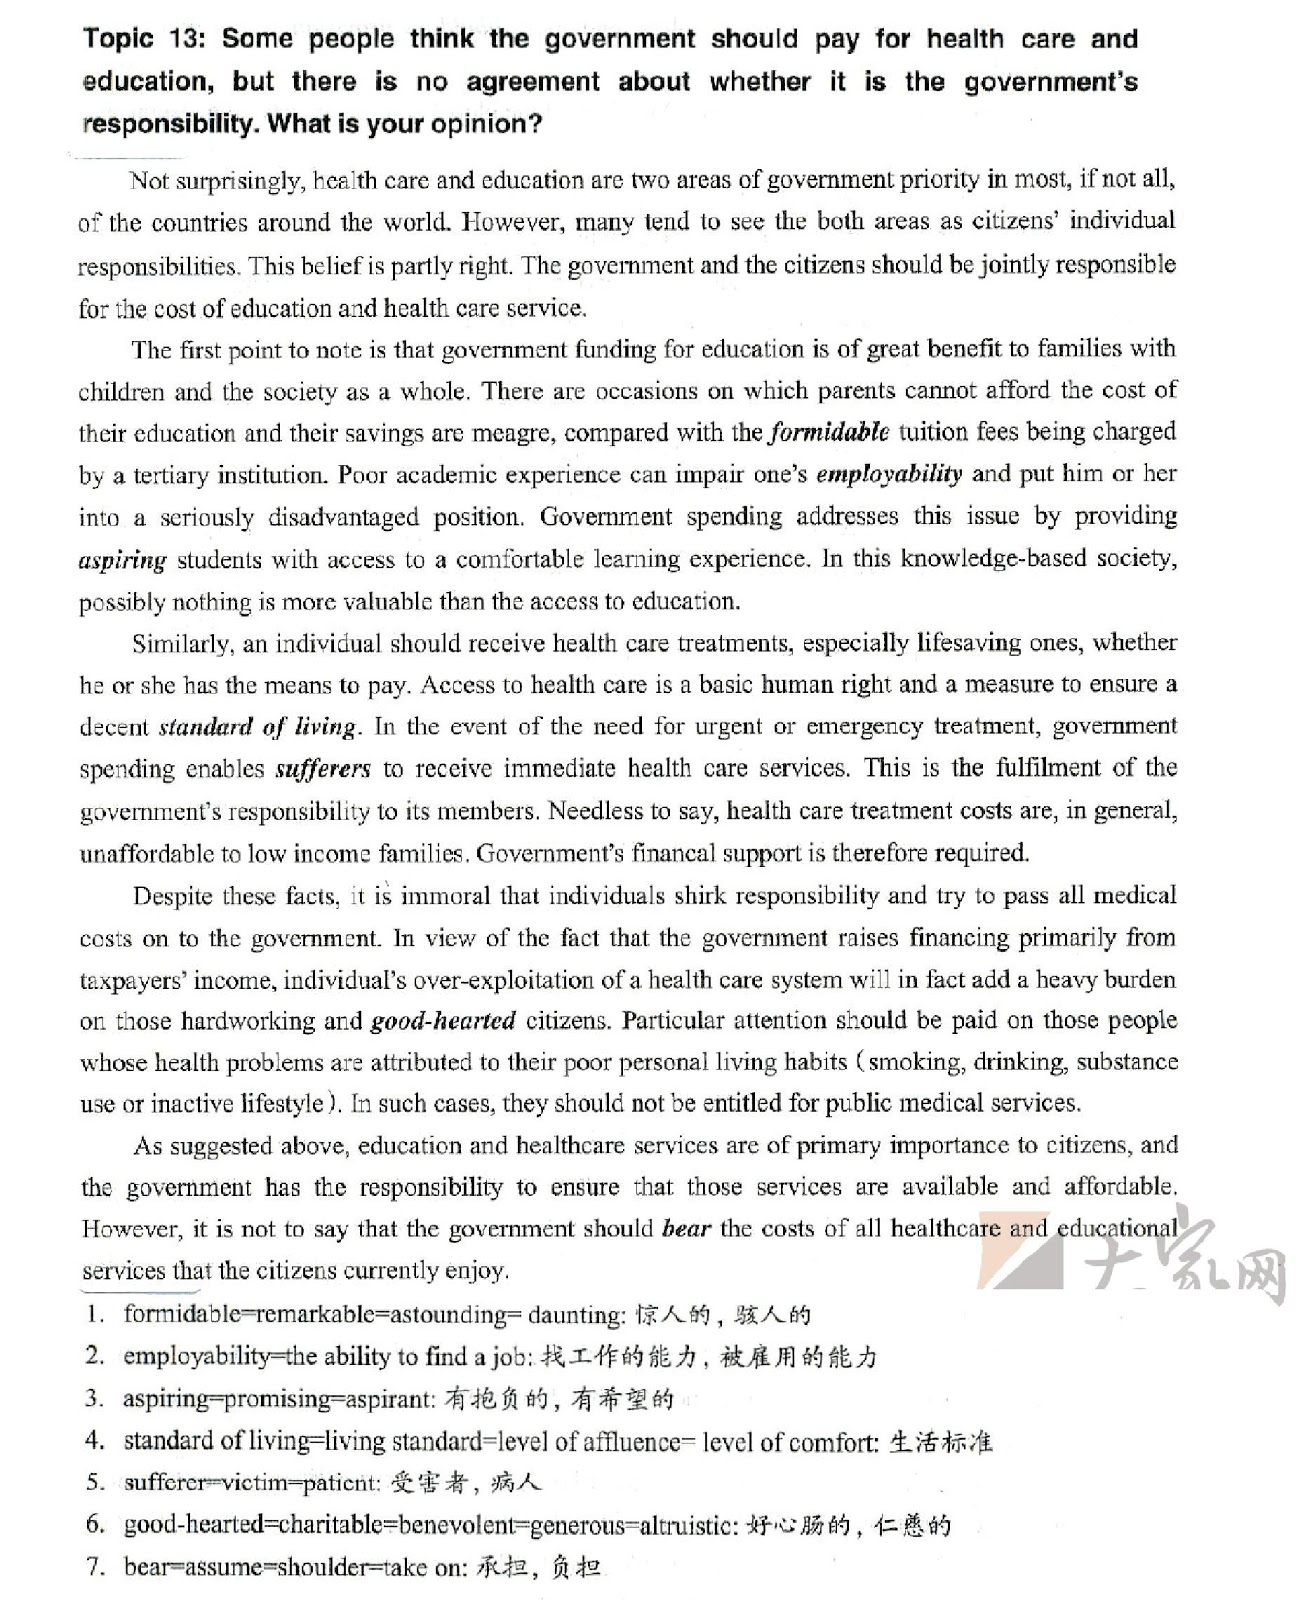 005 Essay Example Topics In Writing Unbelievable Interesting For Competition Hindi Ielts With Answers Pdf Full